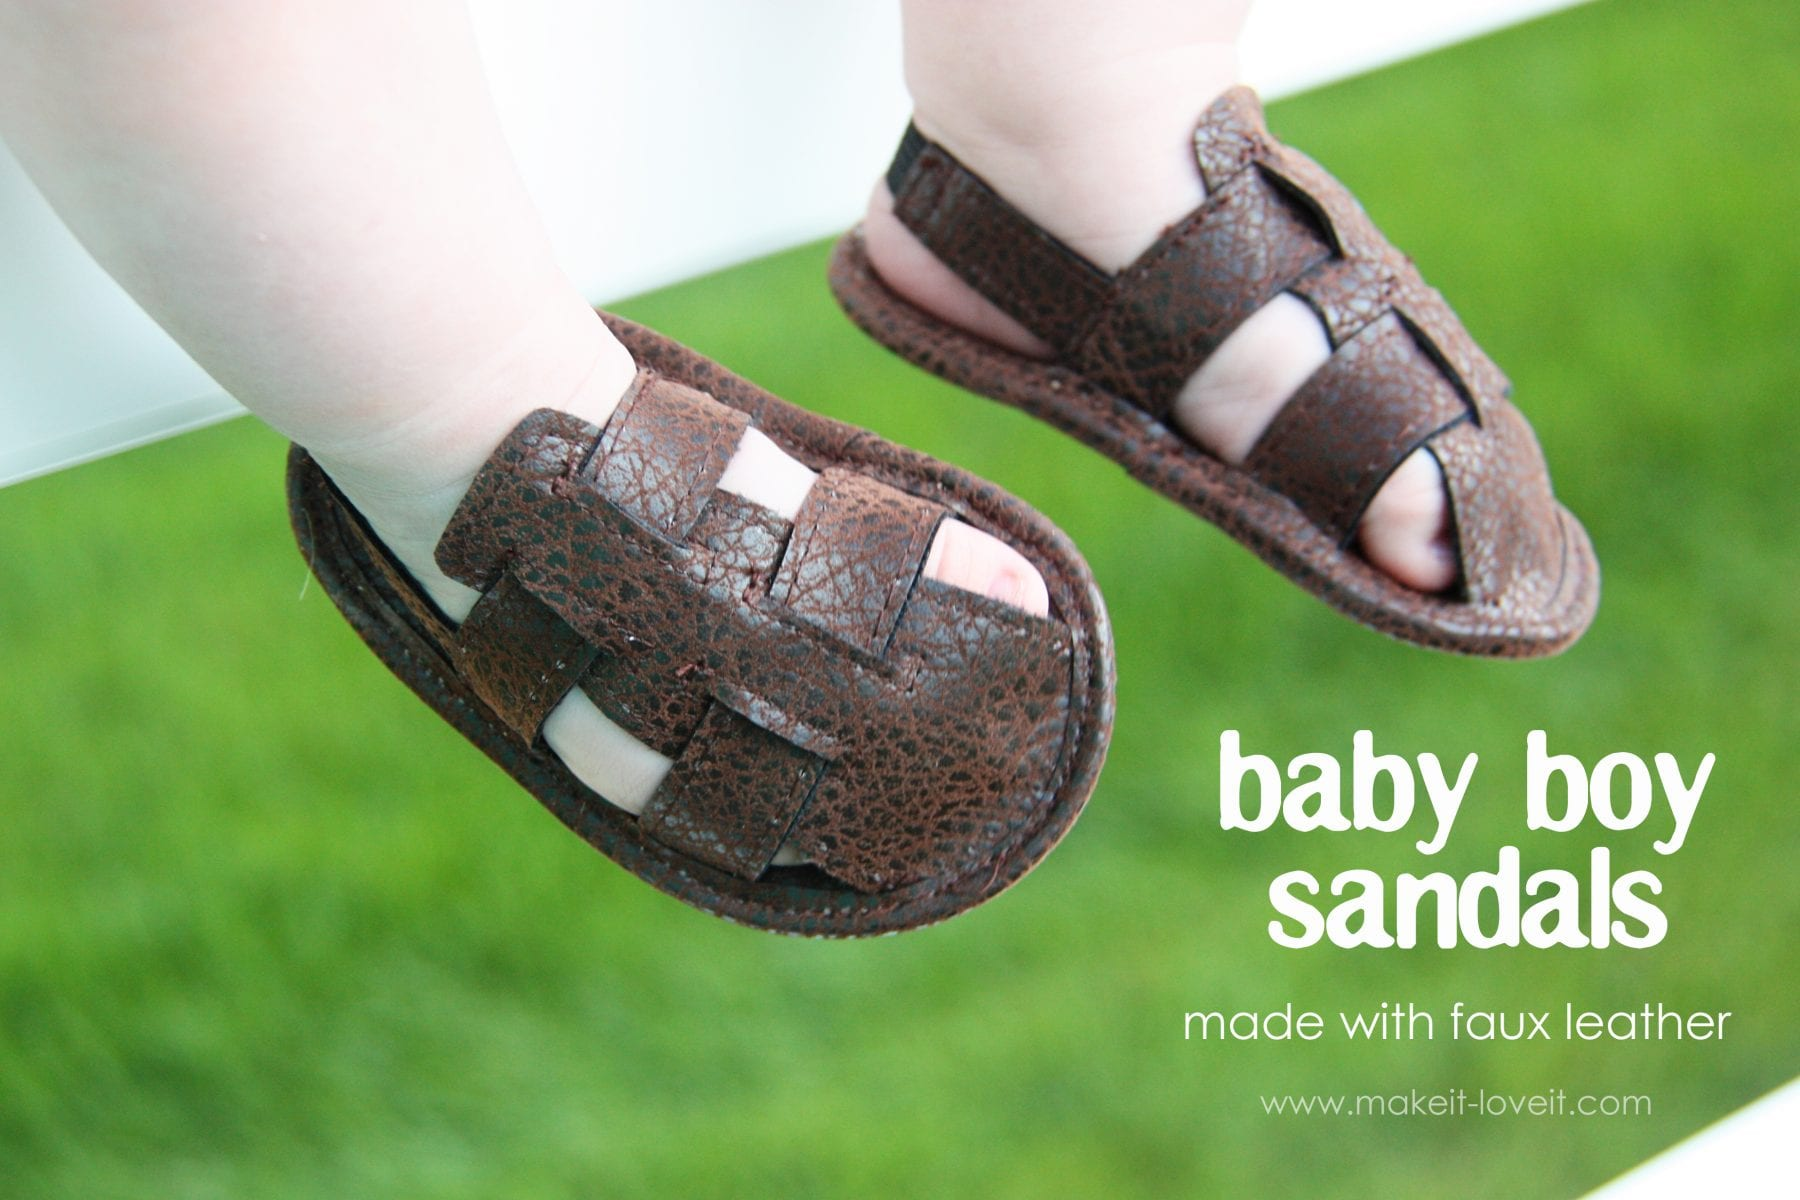 Baby BOY sandals (made with faux leather)